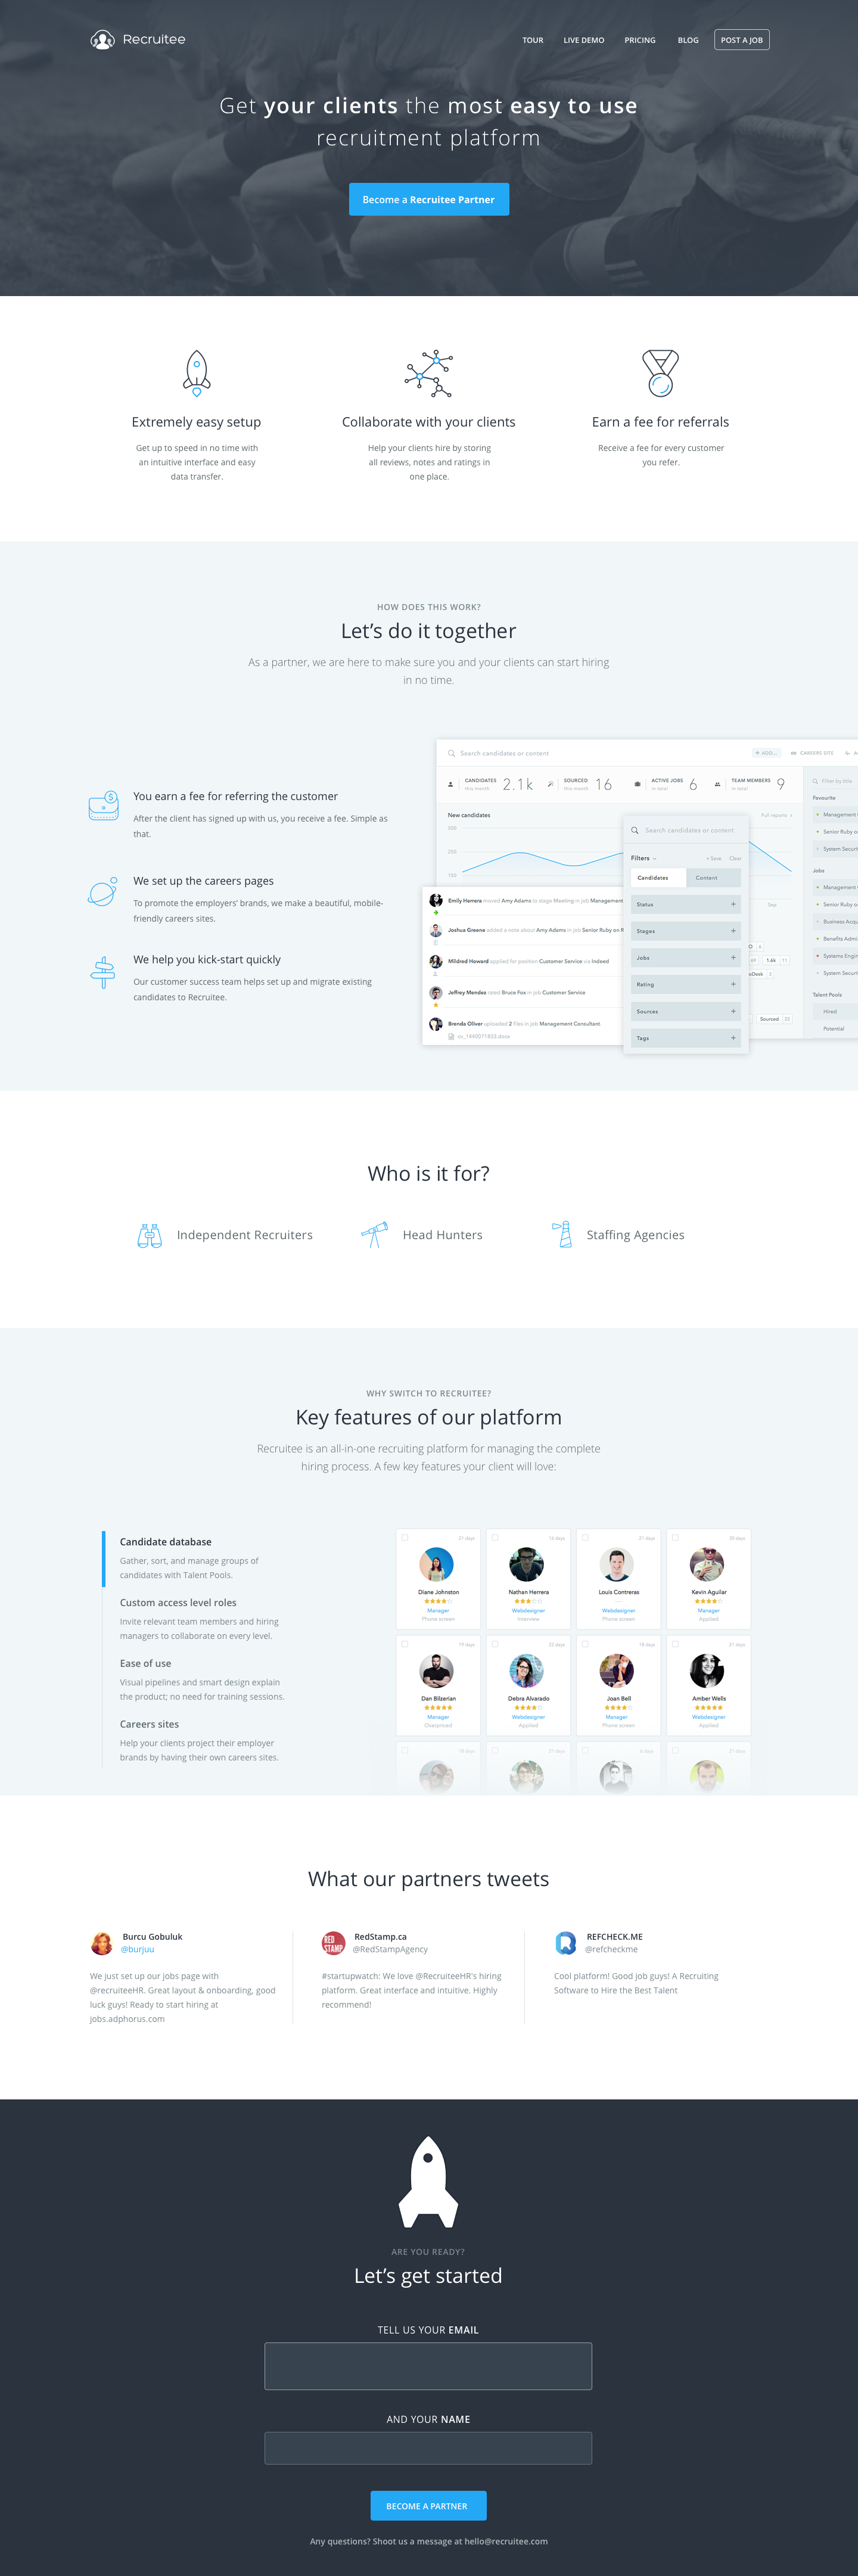 1 1 Partners Page Png By Marcin Moszyk Web Design Inspiration Web Design Partners